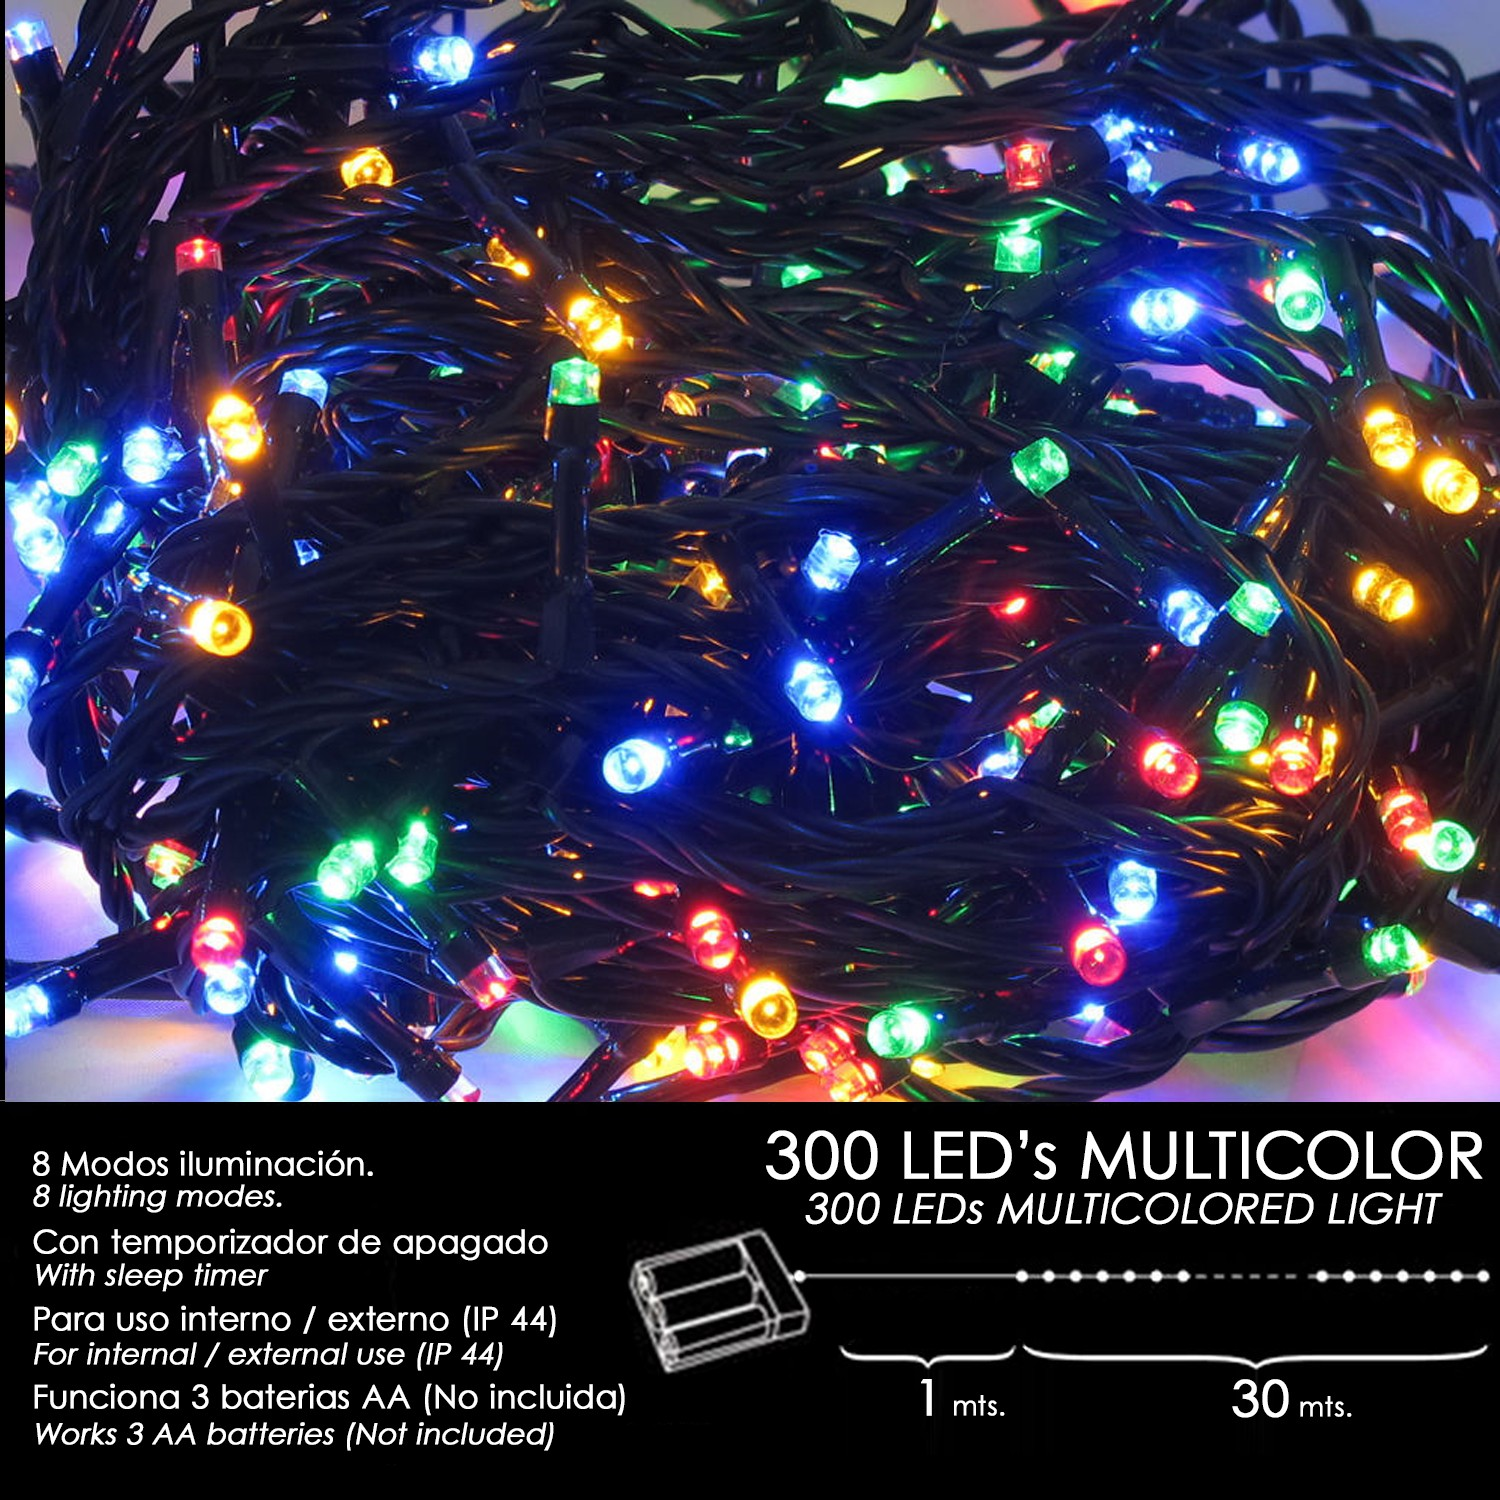 luces-navidad-a-pilas-300-leds-multicolor-interior-exterior-ip44